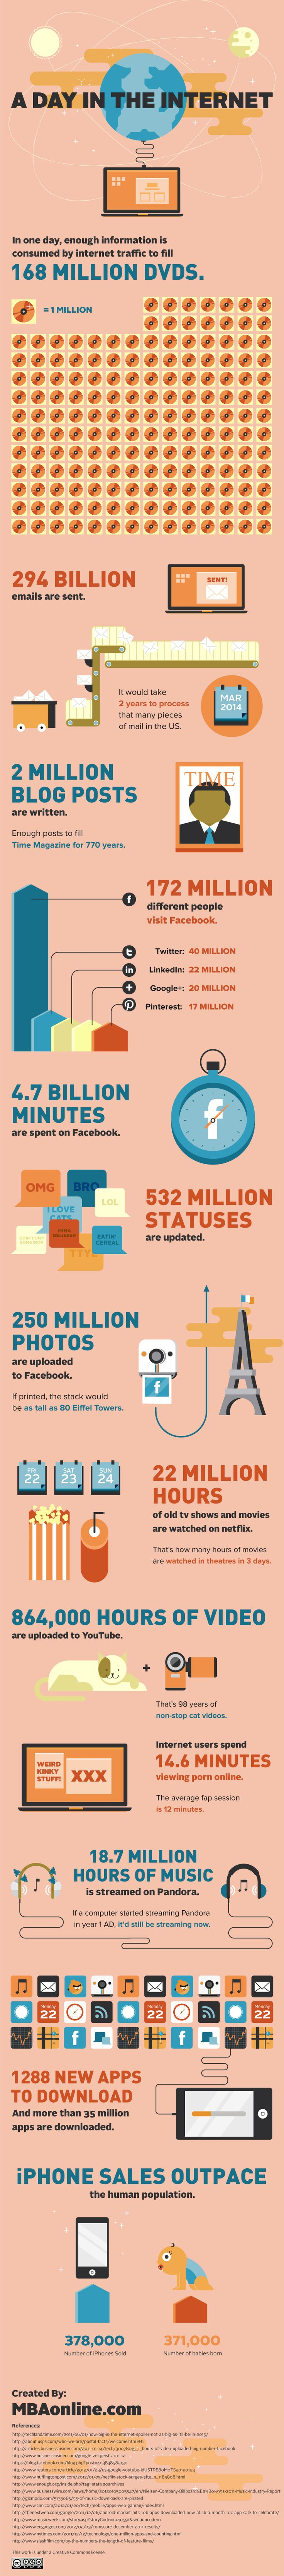 A Day in The Life of the Internet    This is amazing if one's really standing still while reading through this info graphic.    Is it sustainable or at least could it be?Internetinfograph, Stuff, Marketing, Social Media, An Internet, Day, Socialmedia, Tech, Internet Infographic